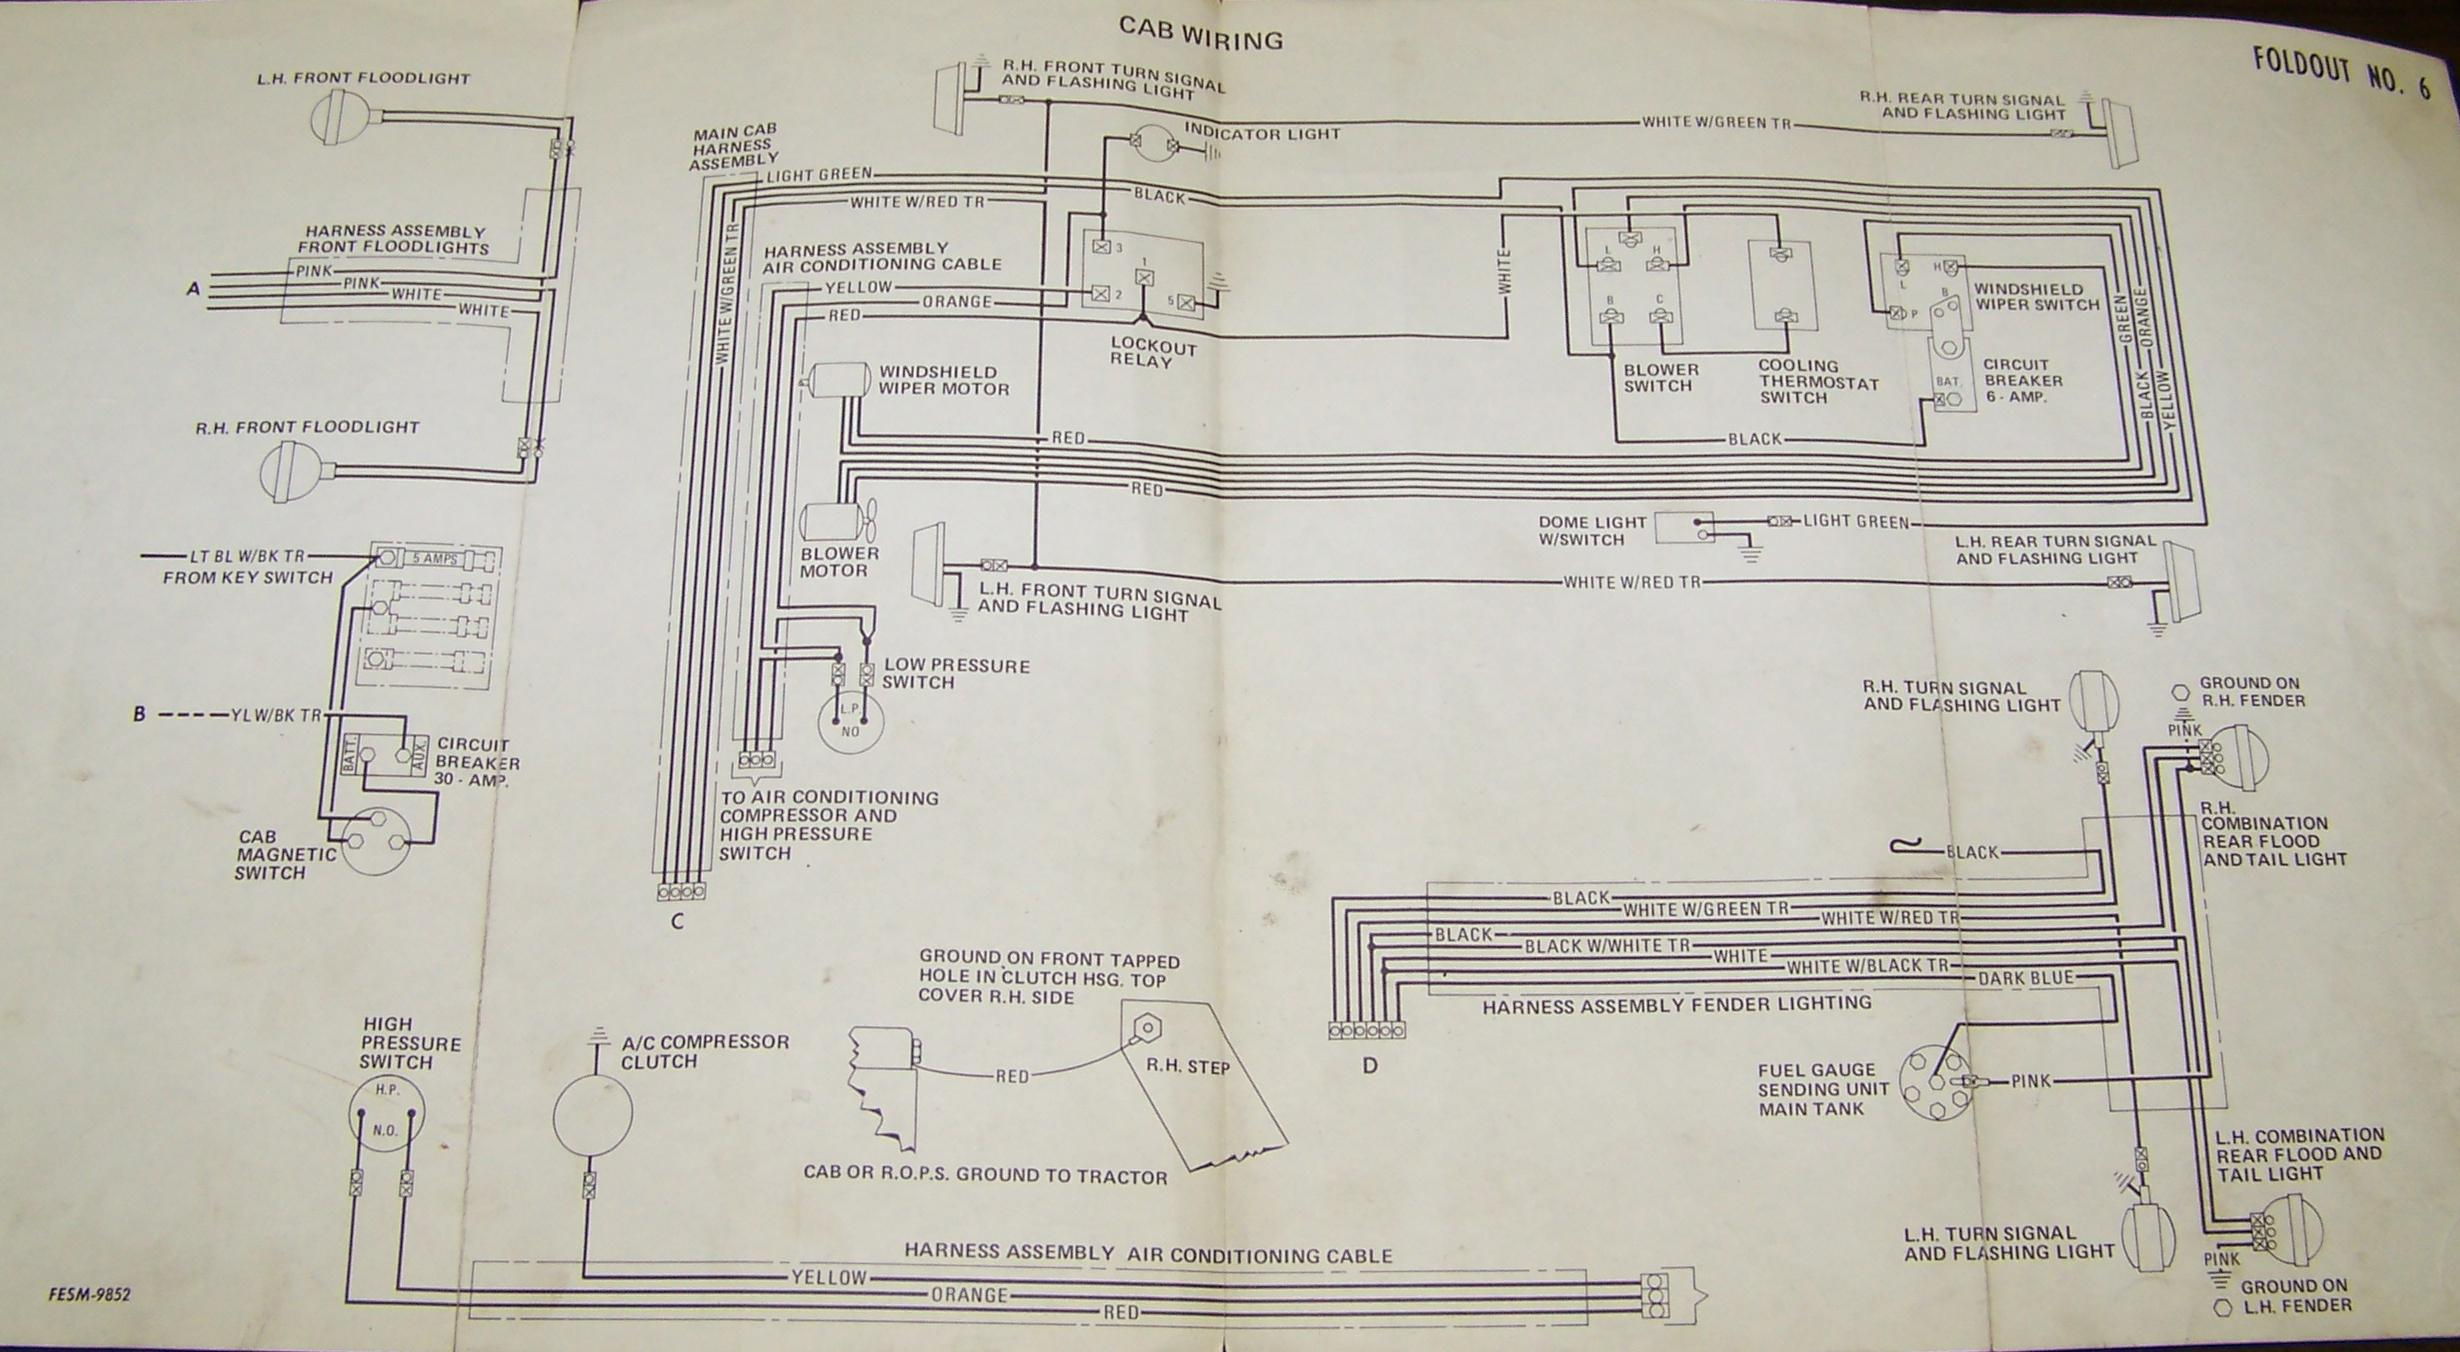 carter gruenewald co inc ih farmall tractor electrical wiring rh cngco com Farmall H Wiring Diagram for 12V Diesel Tractor Wiring Diagram